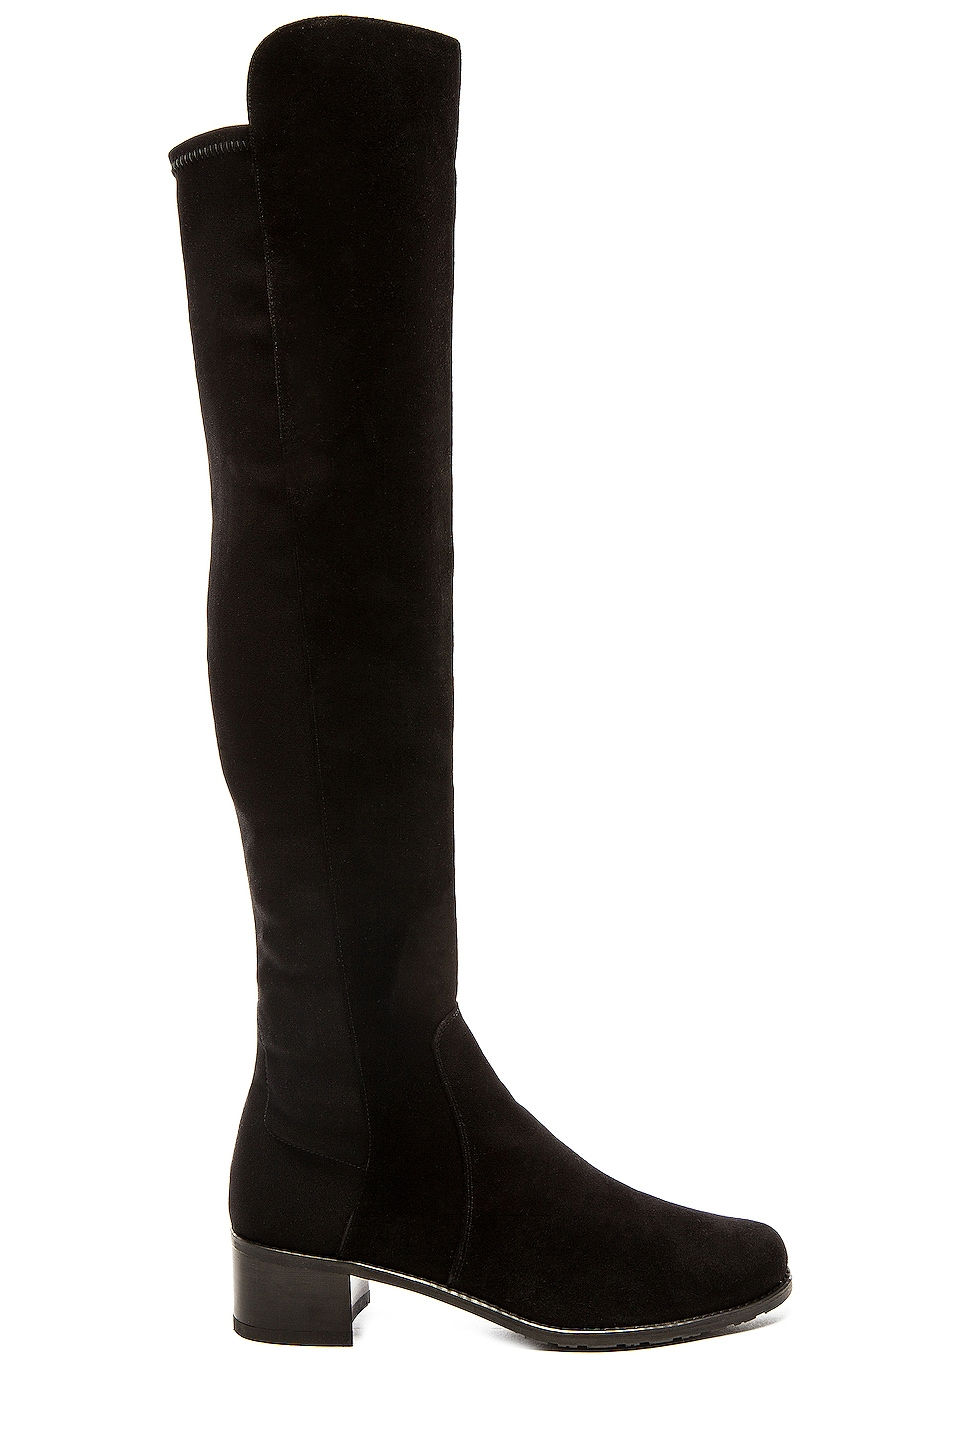 Reserve Boot at REVOLVE